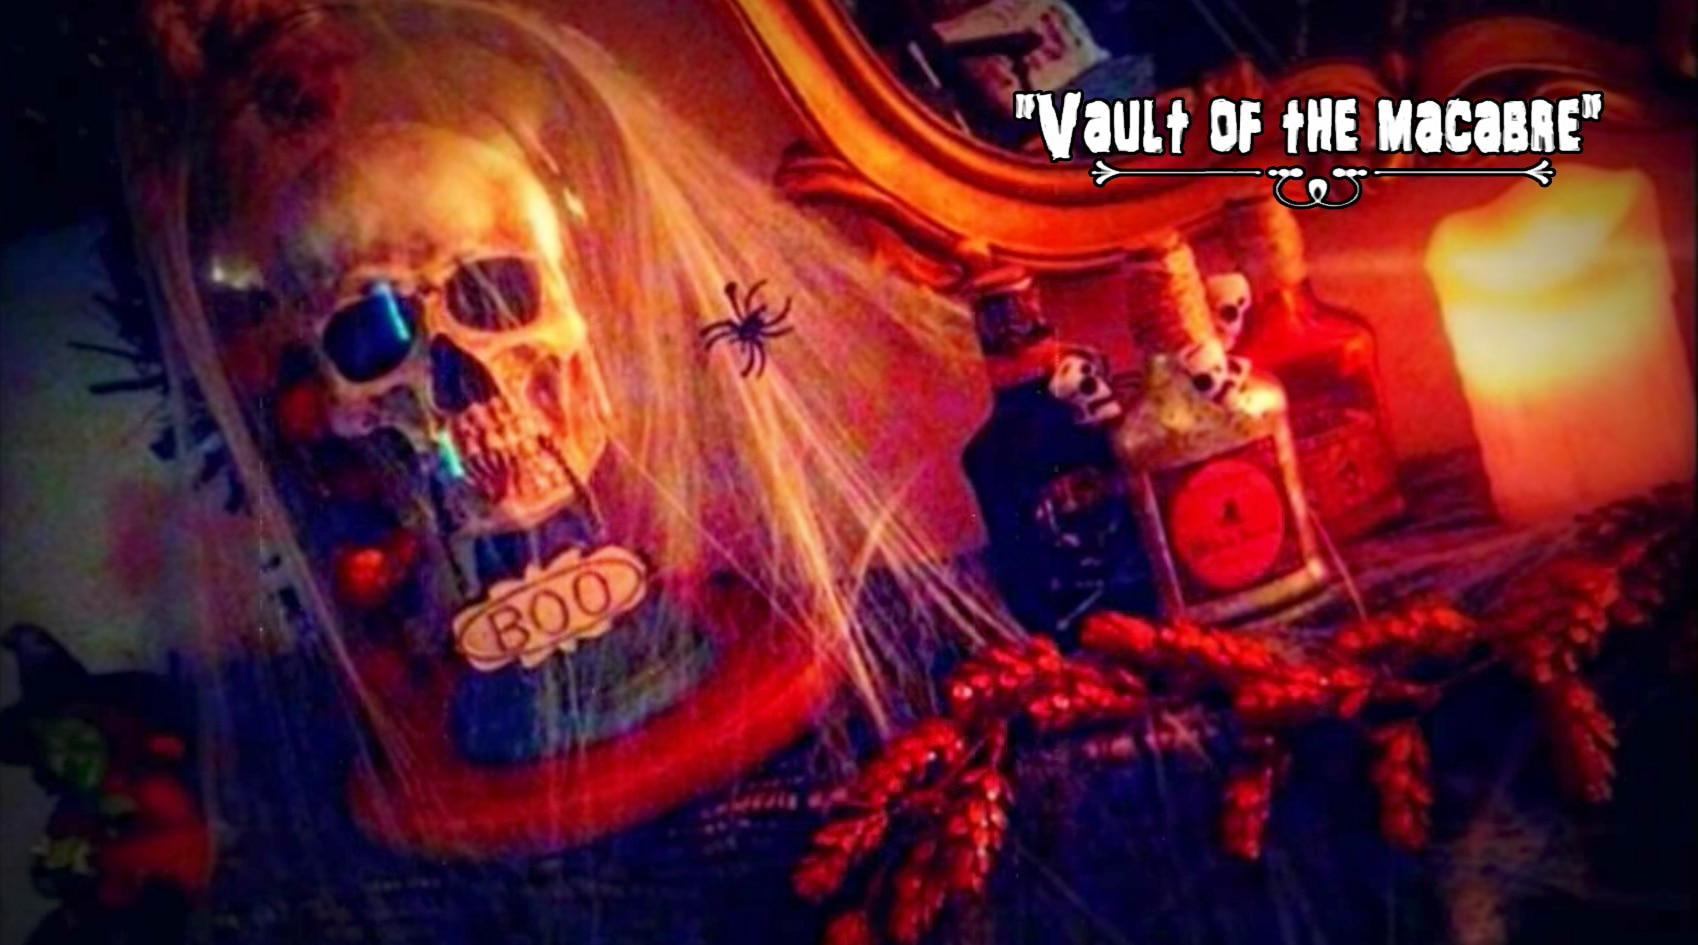 vault of the macabre - Watch as The Vault of the Macabre Opens - Featuring Clive Barker, Stephen Moyer, and Adam Baldwin! - Trick or Treat?